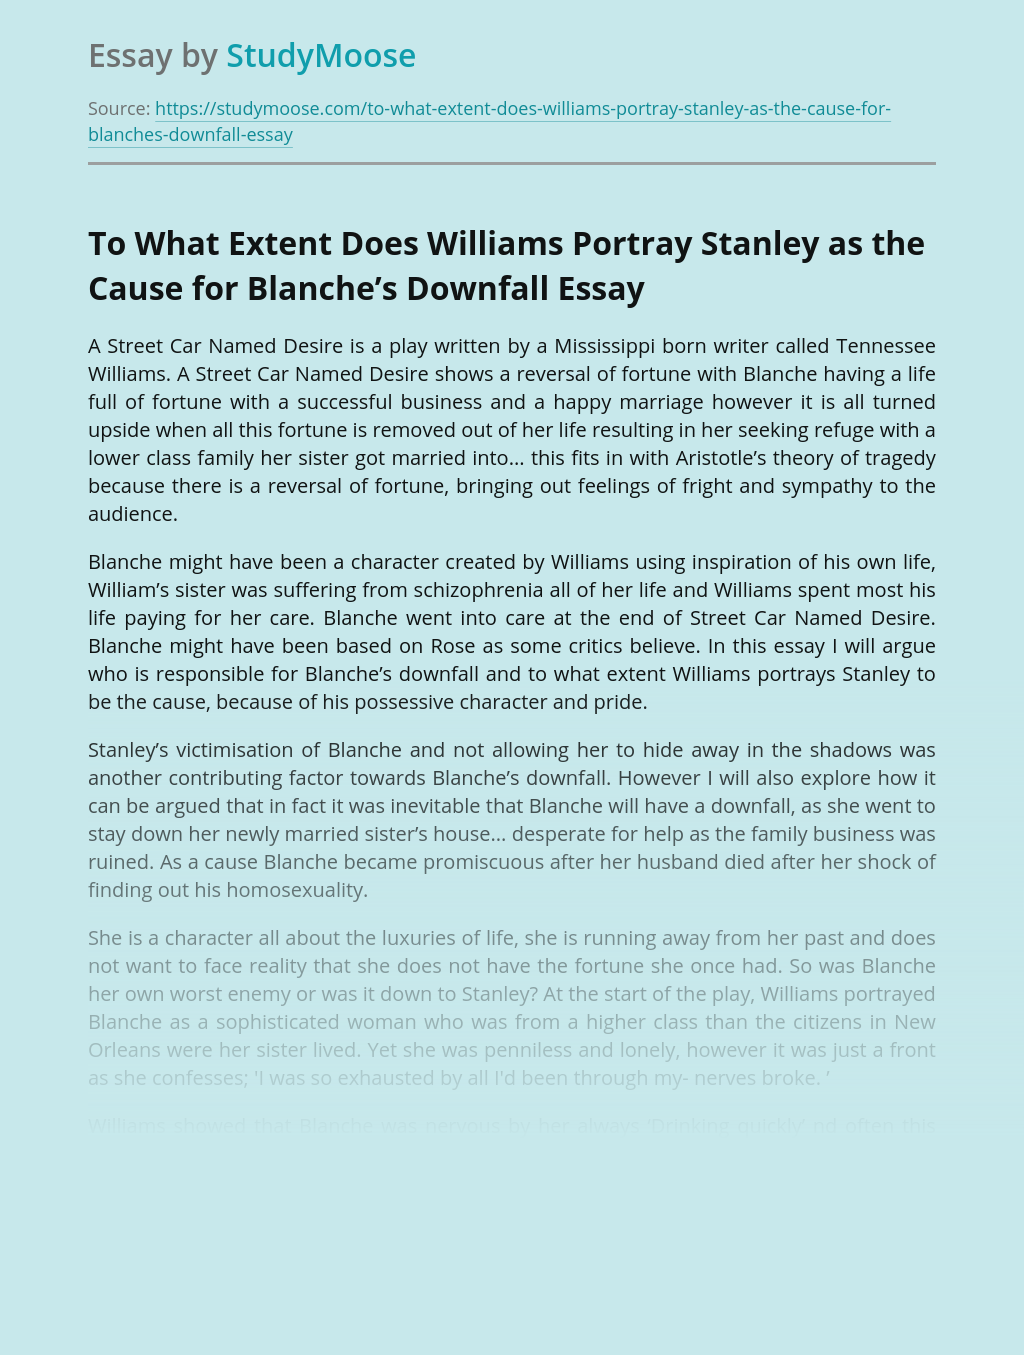 To What Extent Does Williams Portray Stanley as the Cause for Blanche's Downfall?